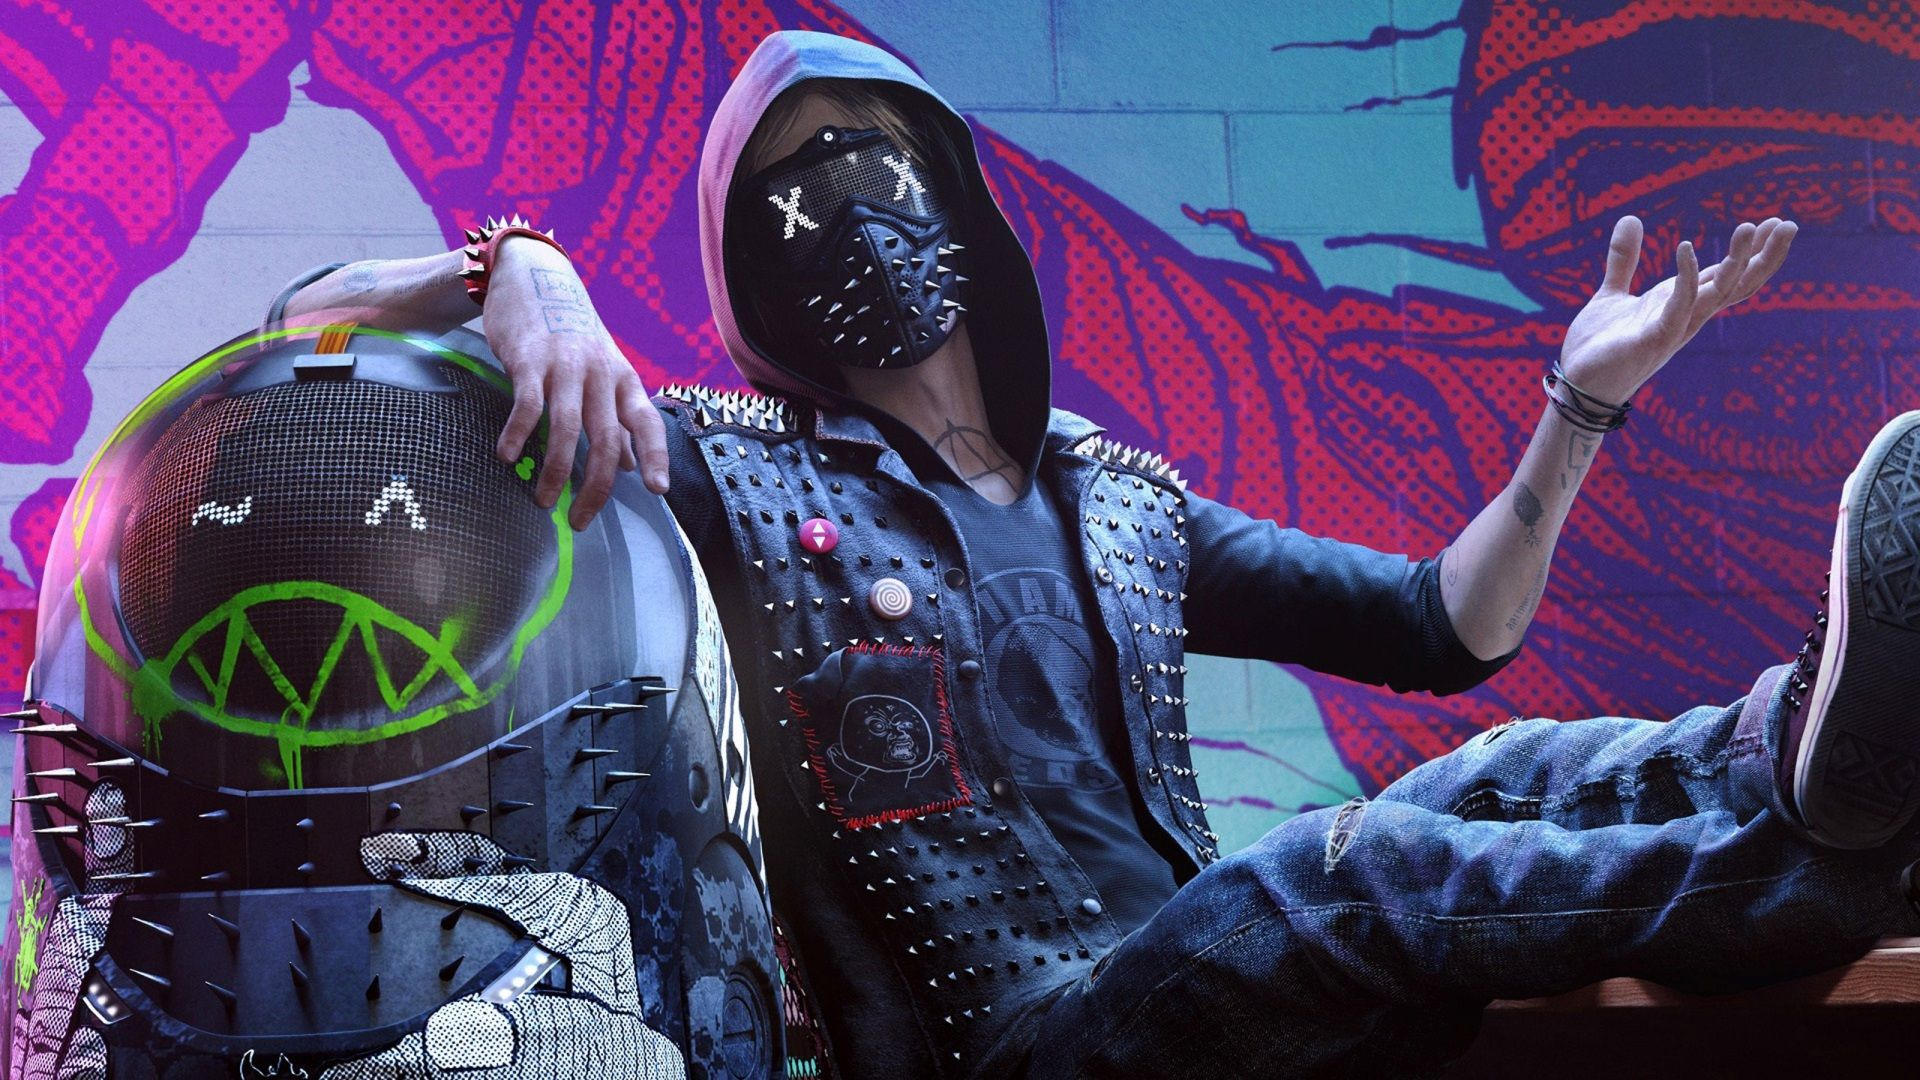 1920x1080 Wrench Free Download Wallpaper For Pc Wrench Watch Dogs 2 Watch Dogs Watch Dogs 1